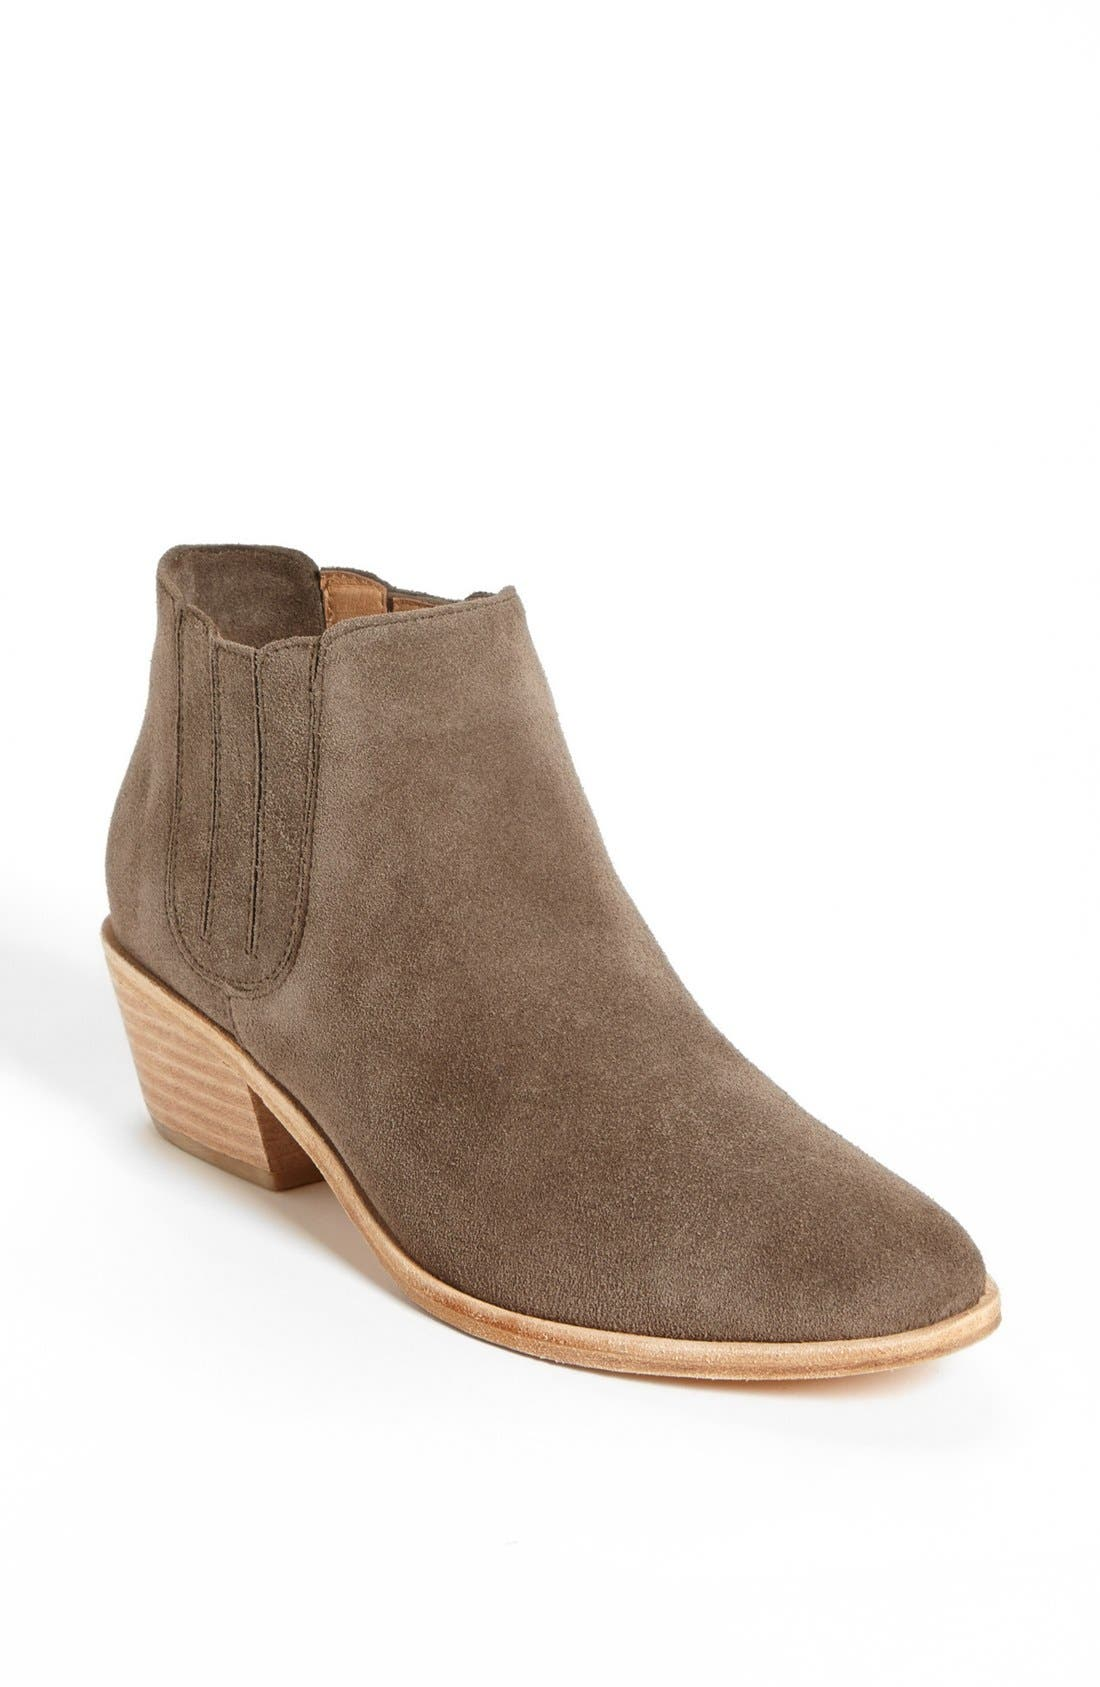 Alternate Image 1 Selected - Joie 'Barlow' Suede Bootie (Women)